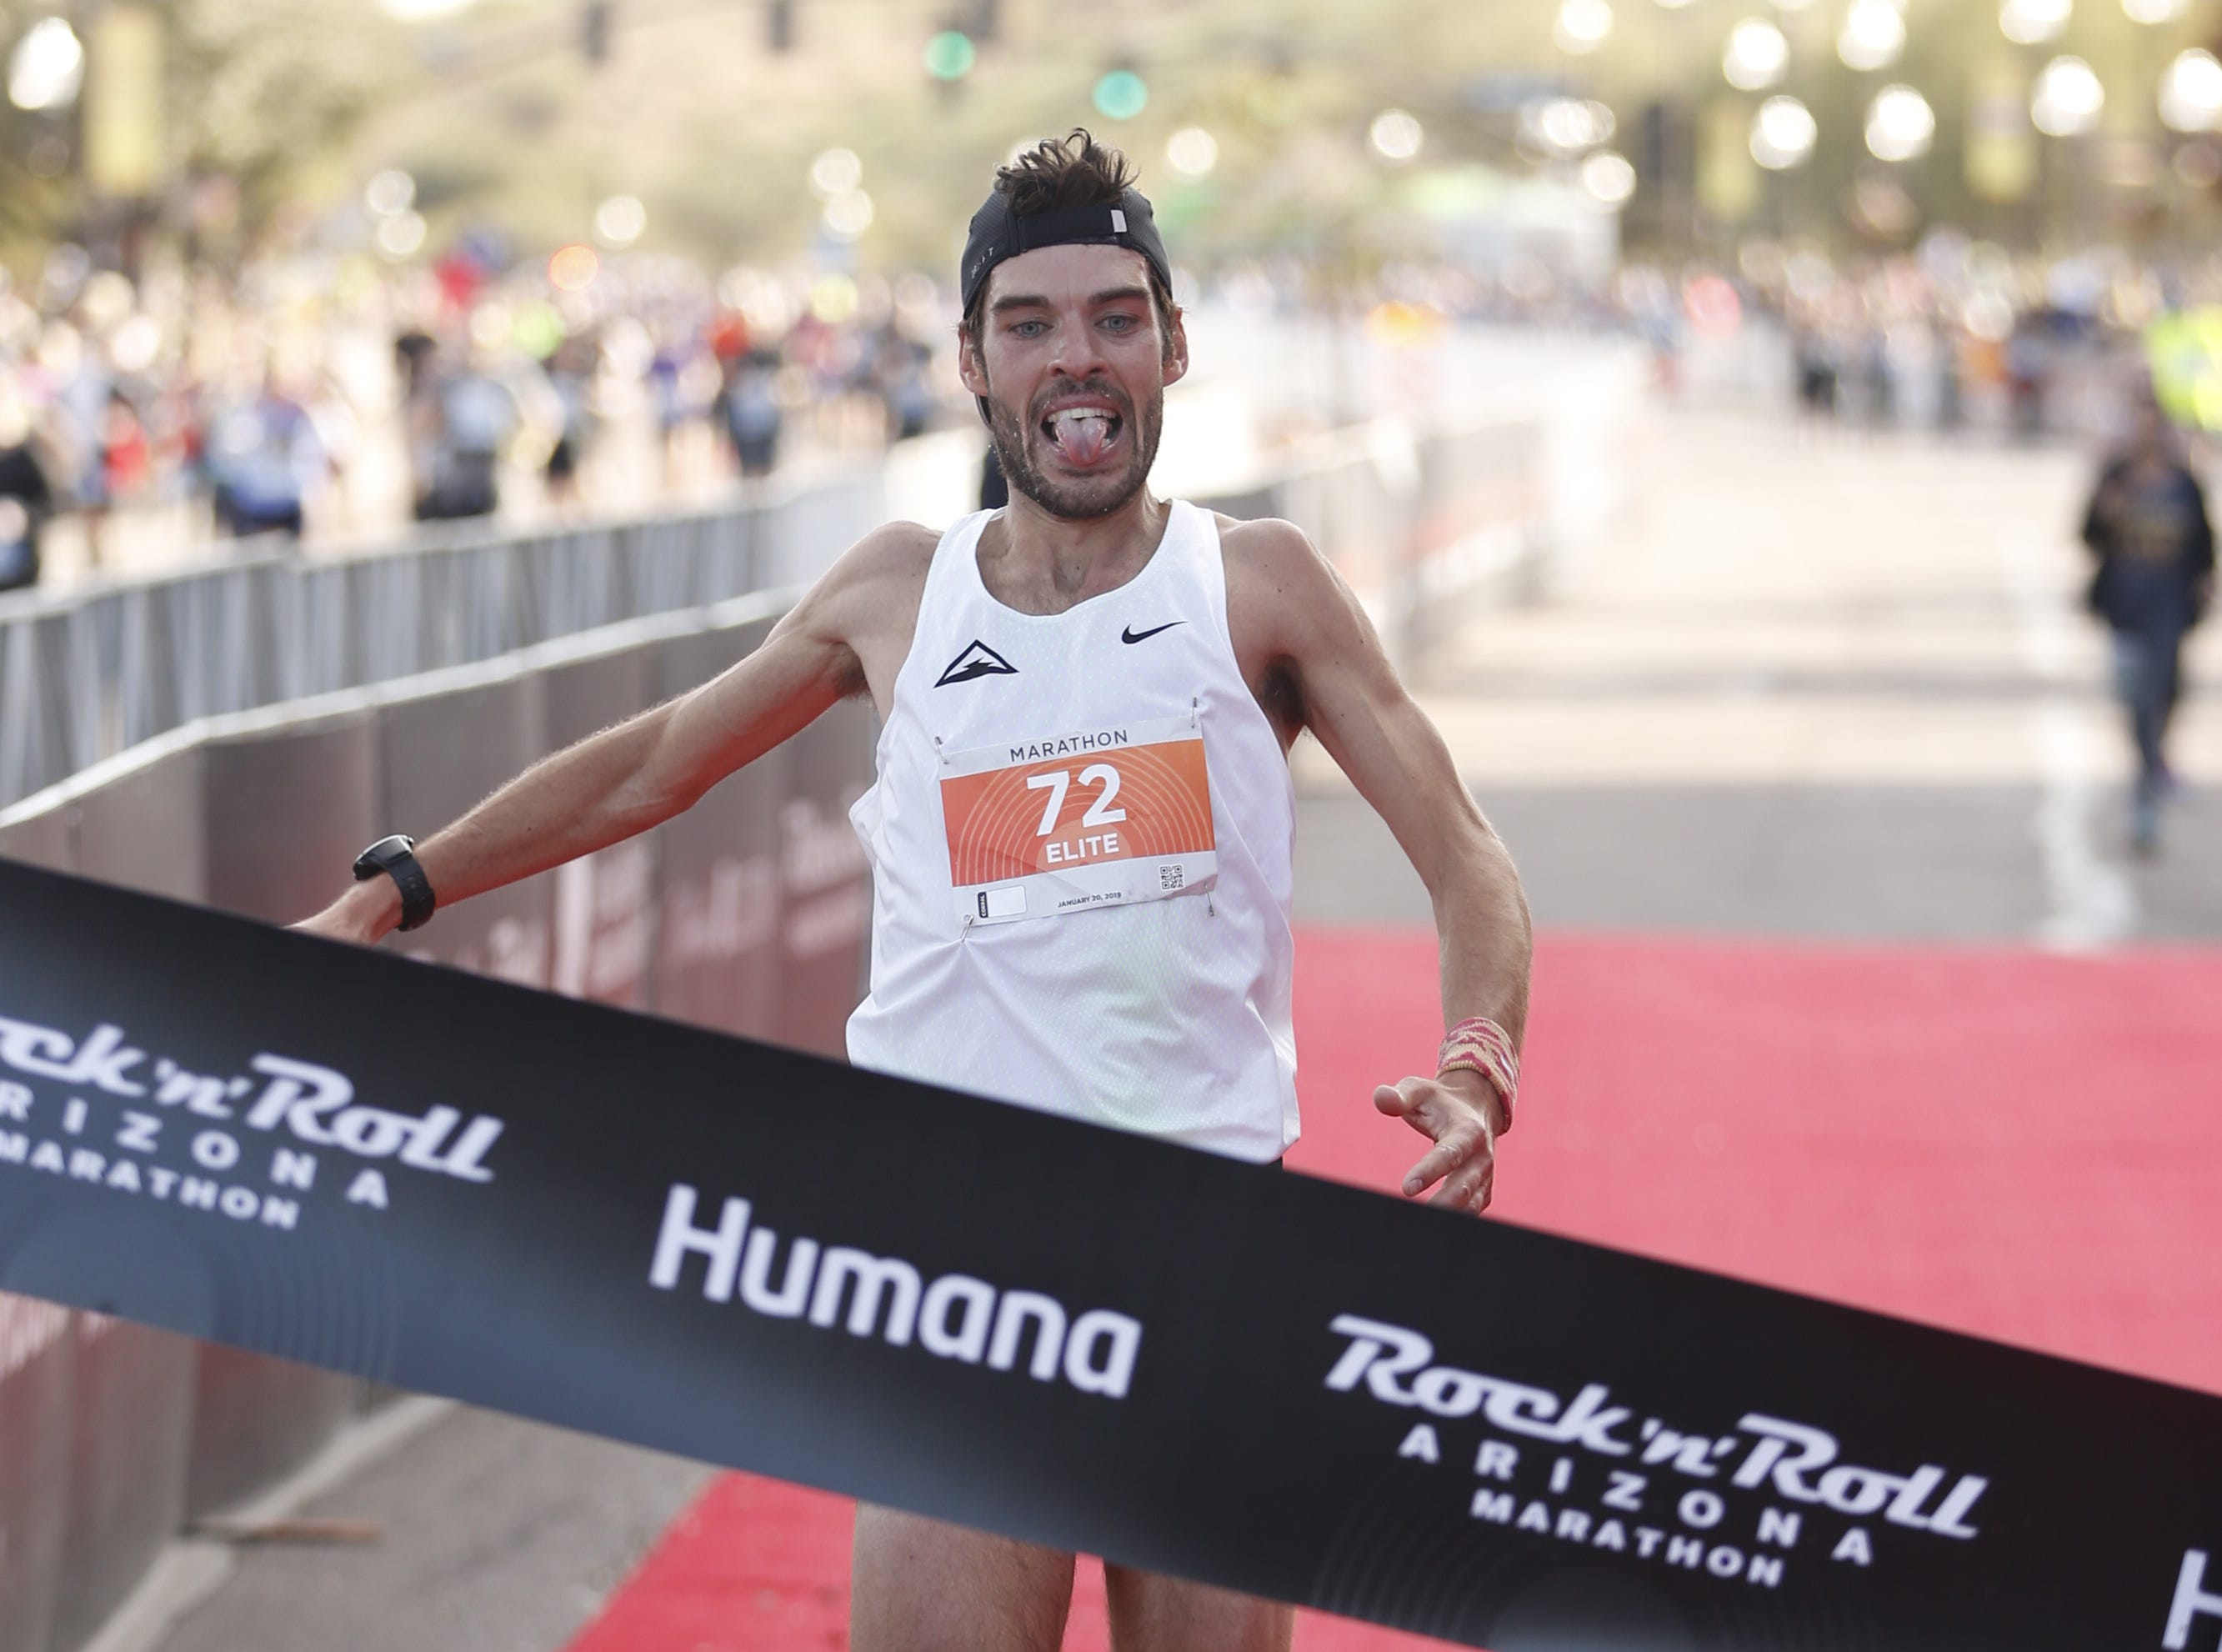 Chris Mocko (72) comes across the finish line to win the Rock 'N' Roll marathon in Tempe on Jan. 20, 2019.